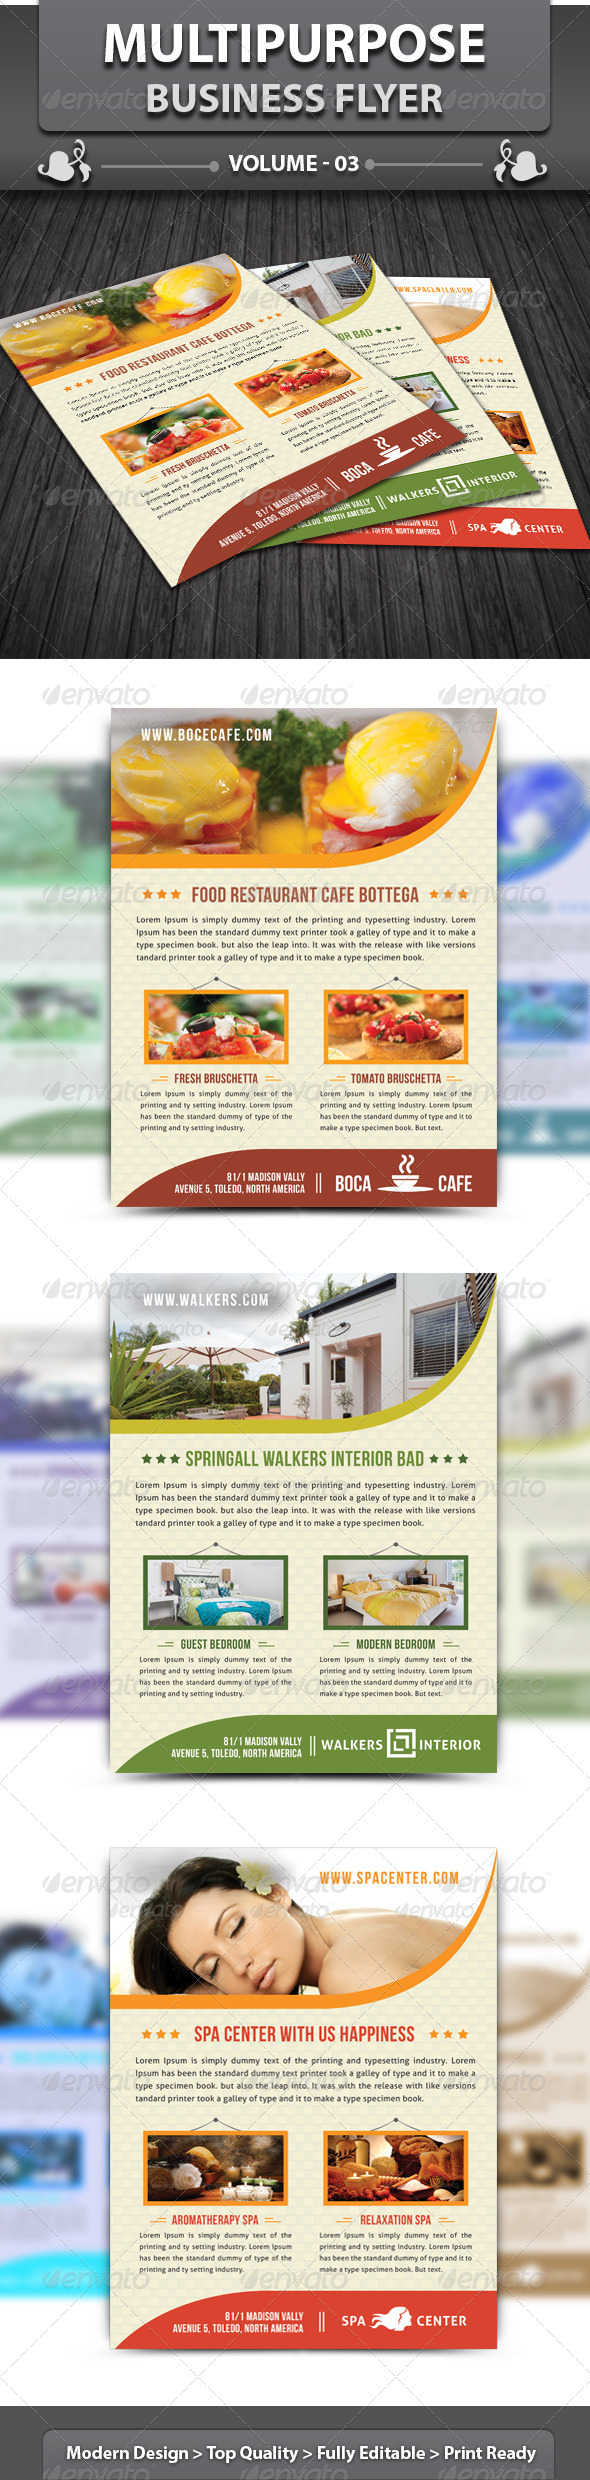 GraphicRiver Multipurpose Business Flyer V 3 4175143